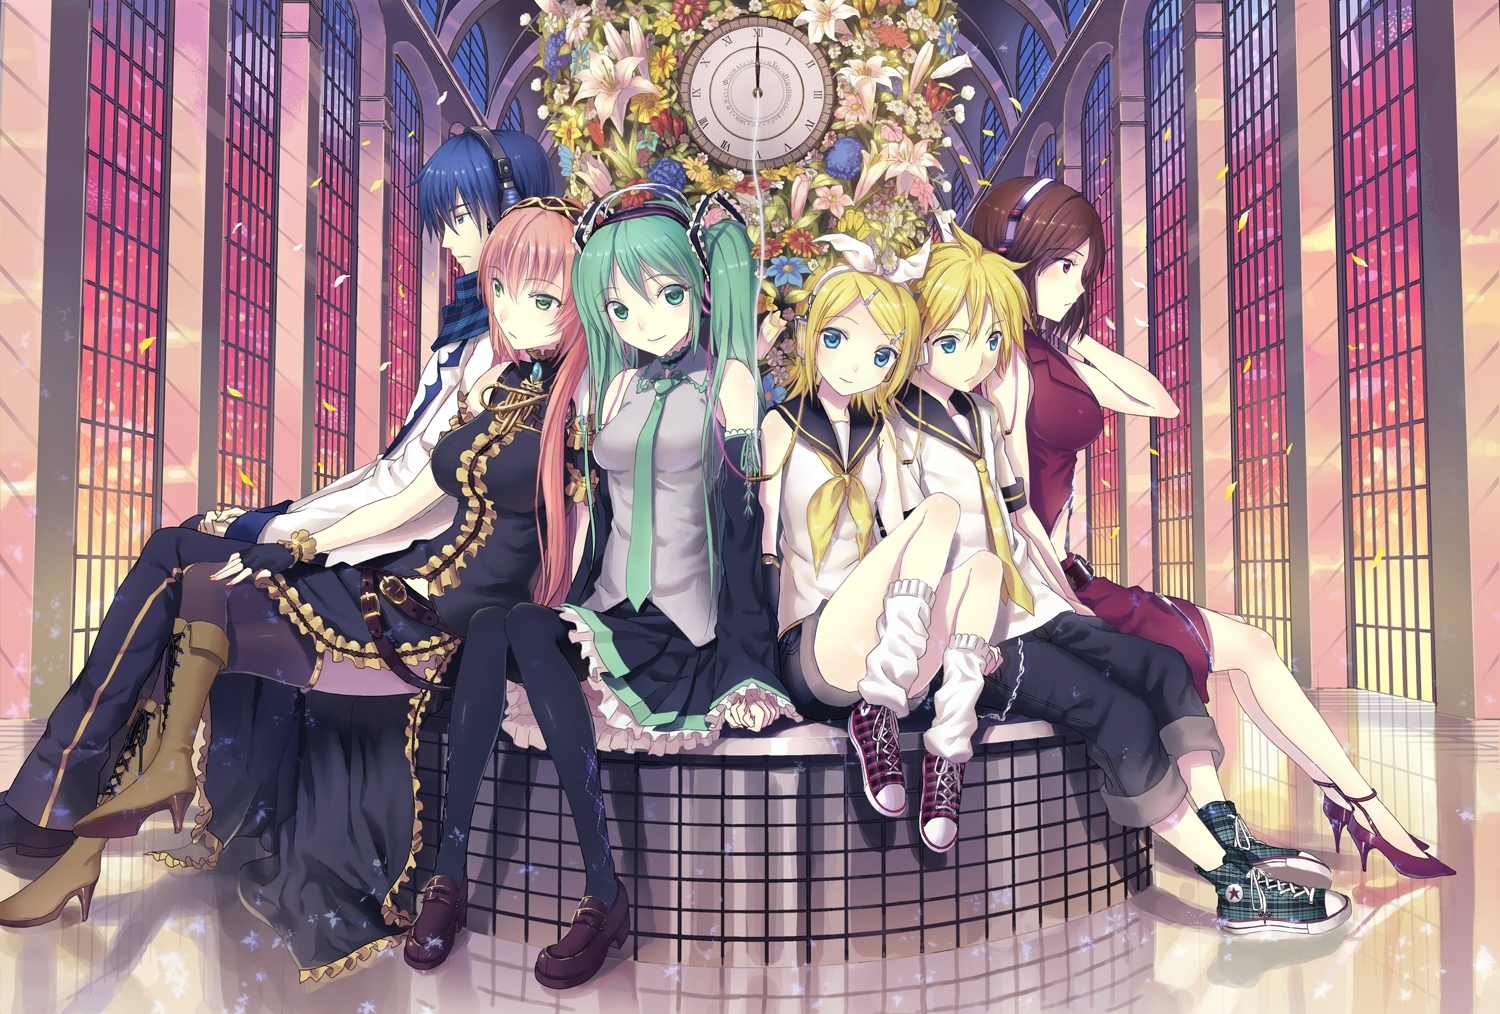 Flower, Kagamine Len, Kagamine Rin, Kichiroku, Luka Megurine, Meiko, Smile, Vocaloid, Window, Zettai Ryouiki, Skirt, Pixiv, Pink Hair, Shoes, Tie, Kagamine Twins, Sandals, Scarf, Short Hair, Sitting, Sneakers, Thigh Highs, Twin Tails, Twins, Blue Hair, Boots, Brown Hair, Male, Green Eyes, Petal, Black Thigh Highs, Circus, Female, Group, High Heels, Hatsune Miku, Kaito, Blonde Hair, Blue Eyes, Clock, Detached Sleeves, Frills, Headband, Headphones, Holding Hands, Long Hair